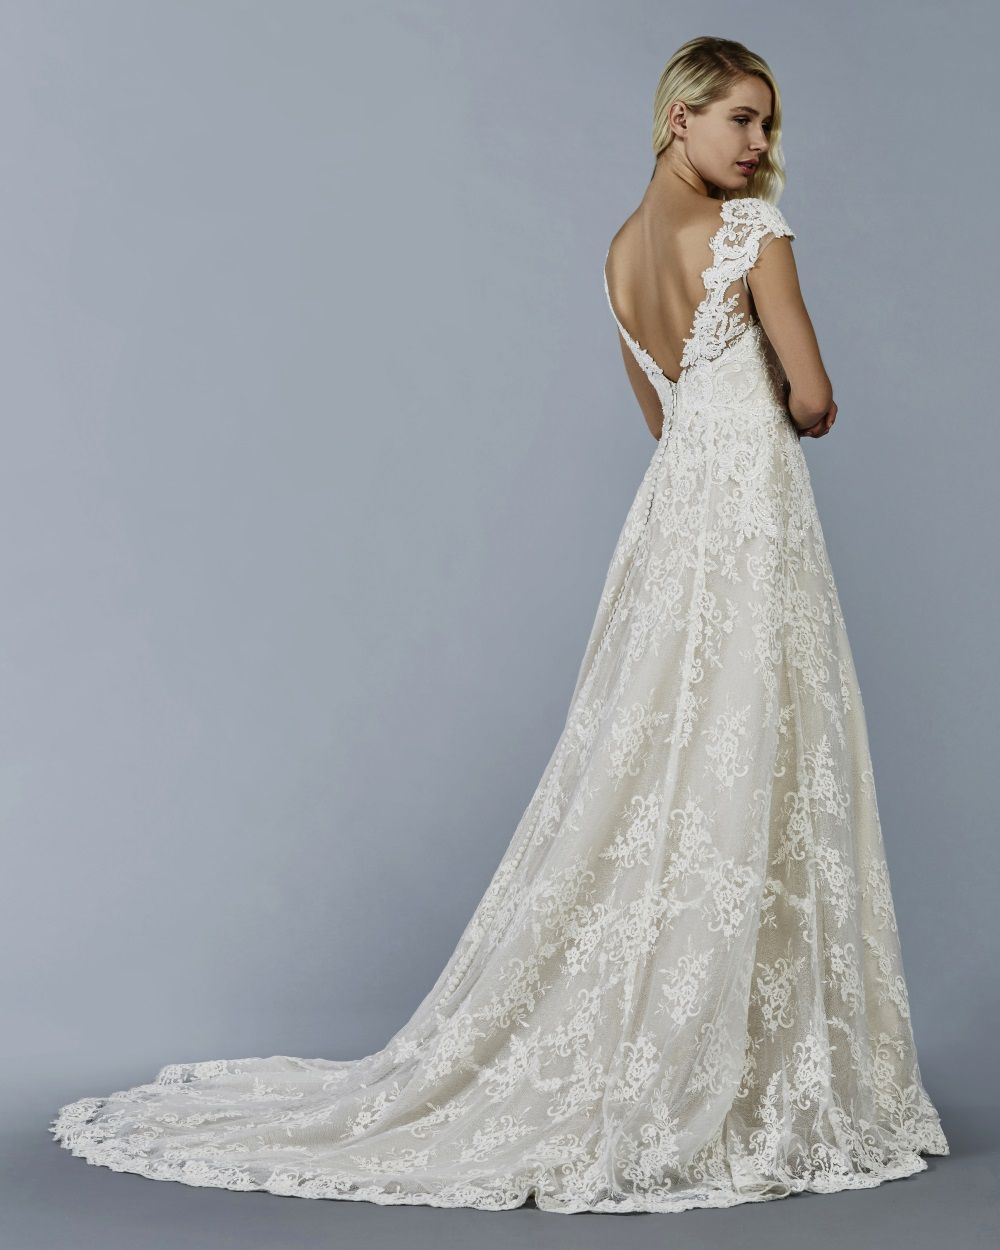 Cyrus wedding dress by Kelly Faetanini // Textured tulle champagne ...